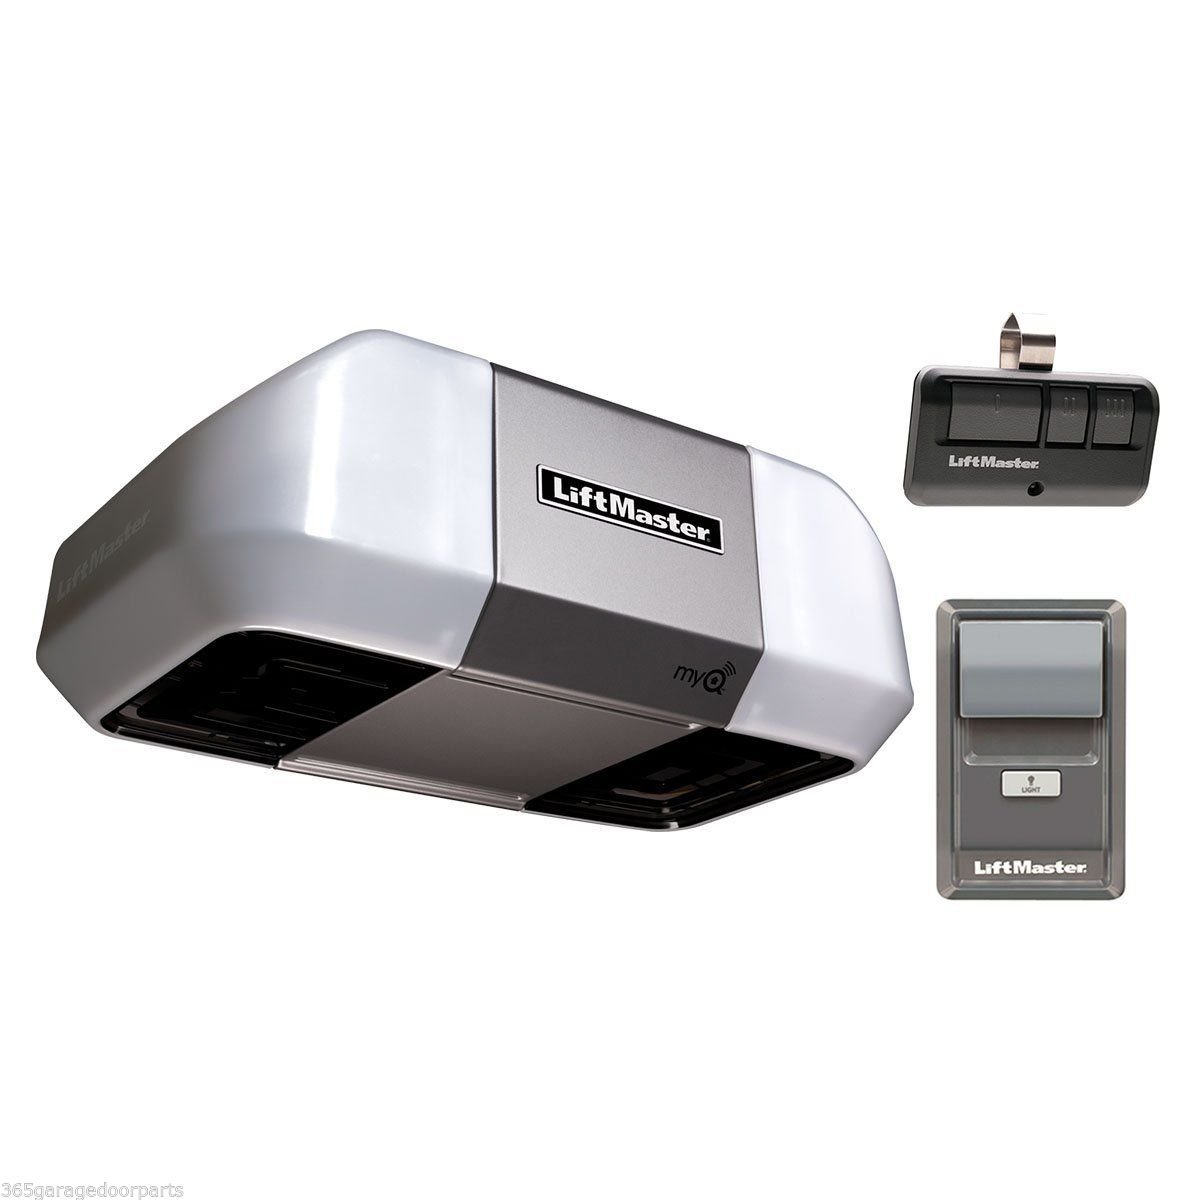 Liftmaster 8355W 1/2hp Belt Drive Motor MyQ Wi-Fi Garage Door Opener Premium No Rail